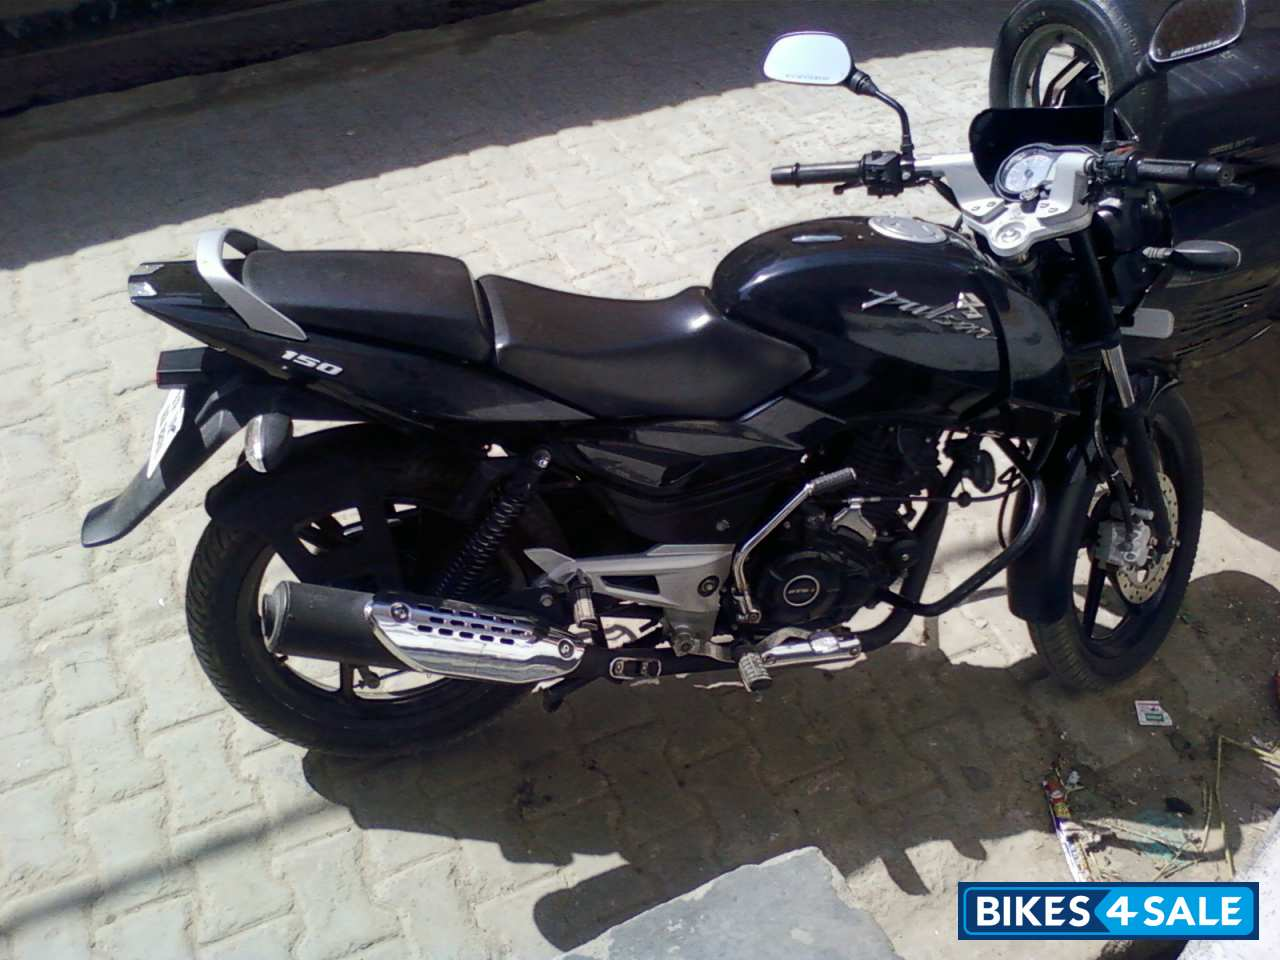 Used 2011 model Bajaj Pulsar 150 DTSi for sale in Noida. ID 64889 ...